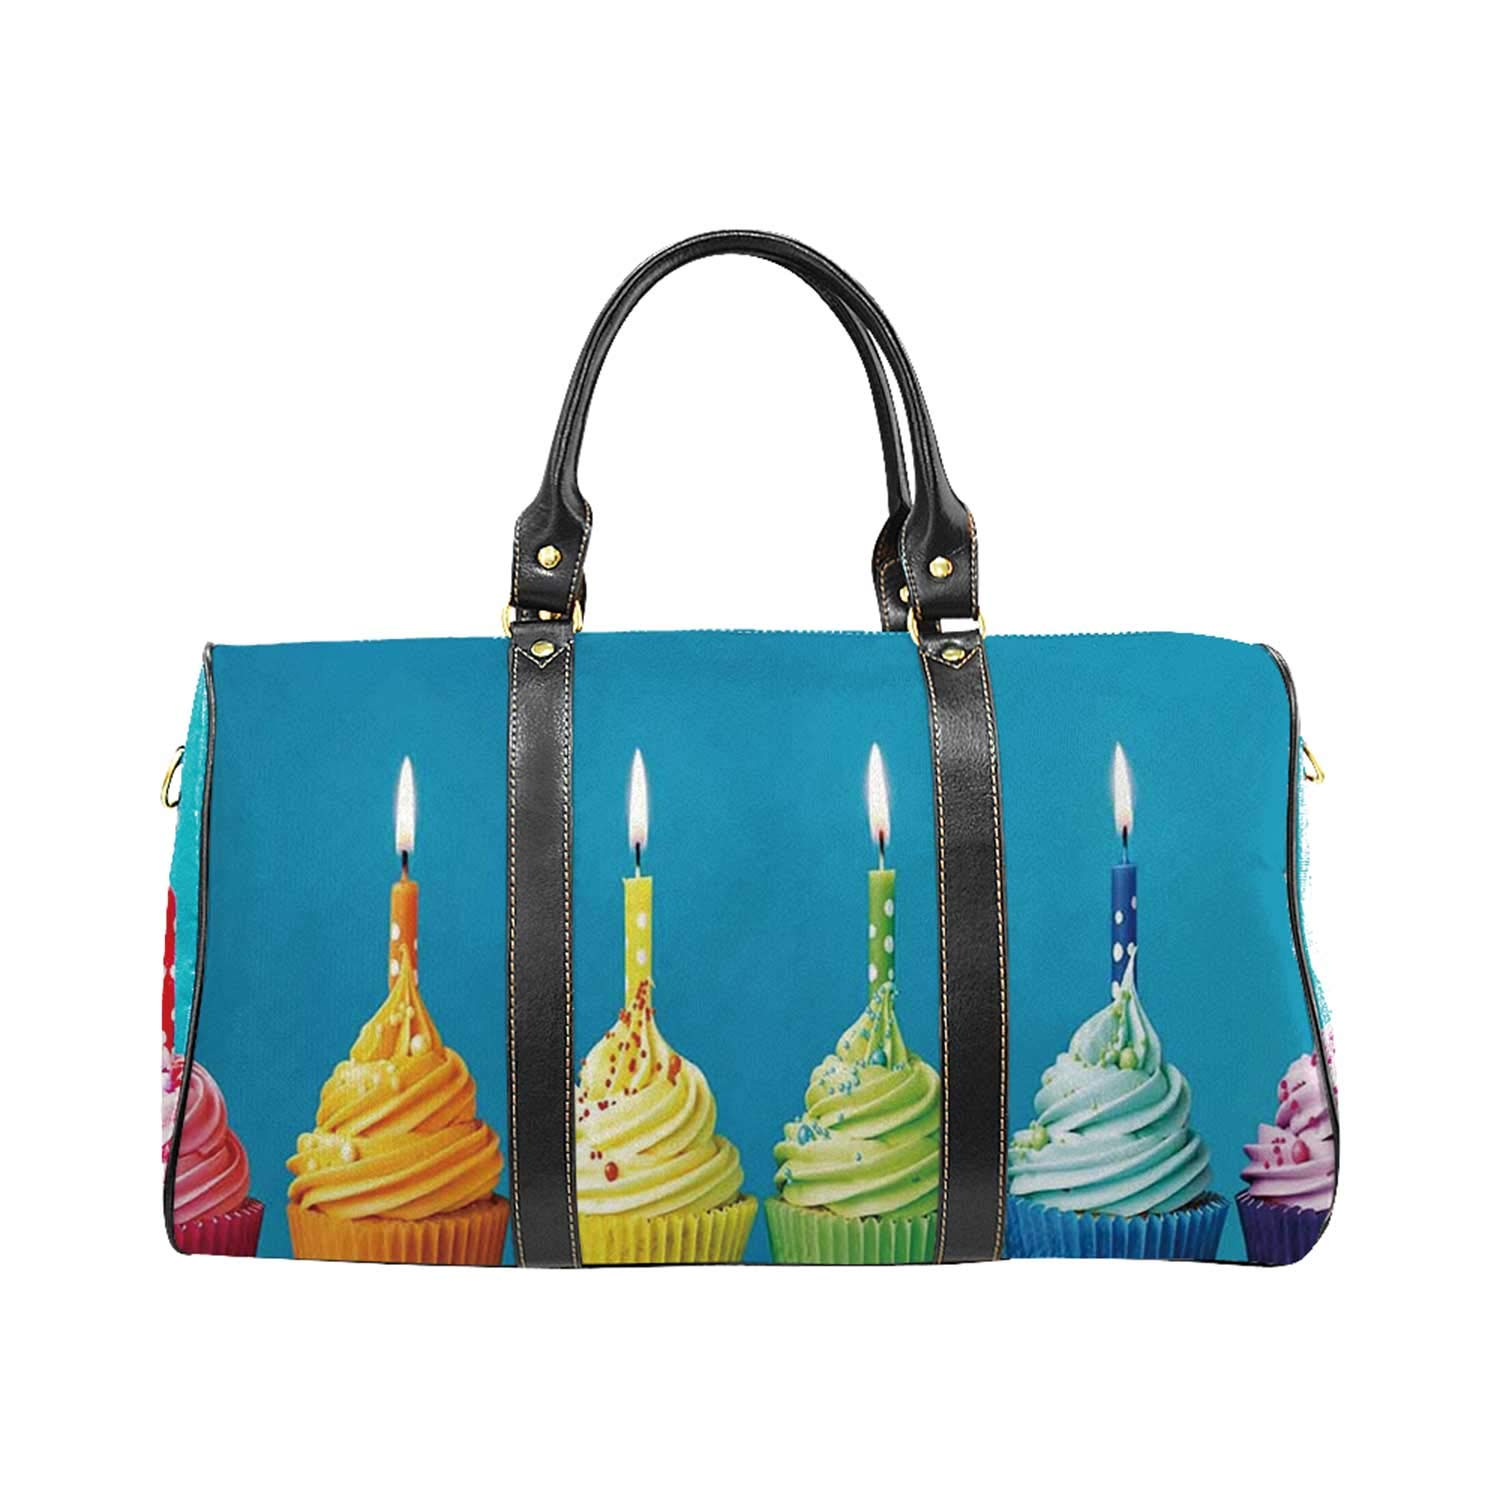 Birthday Decorations College Travel Bag,Cupcakes in Rainbow Colors with Candles Fun Homemade Party Food Sweet for Picnic by YOLIYANA